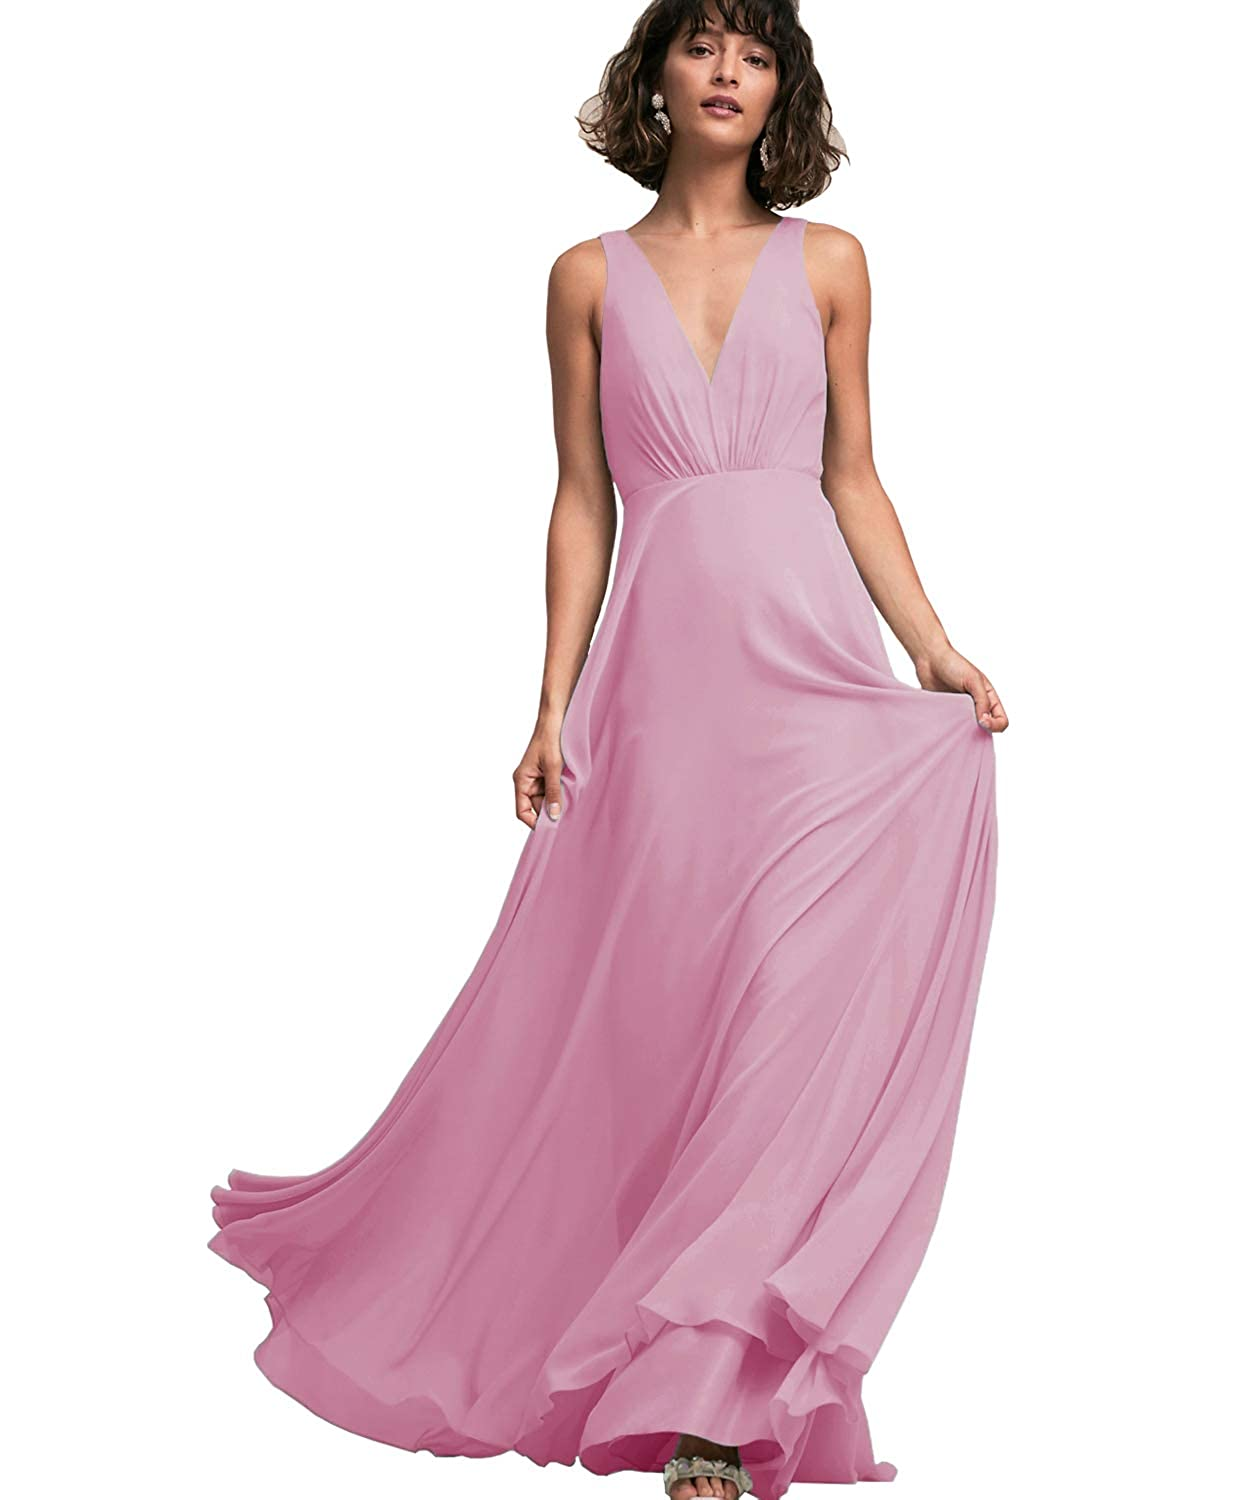 bc608ac0a9a5 Yilis Women's Sleeveless V Neck A Line Chiffon Long Bridesmaid Dress Formal  Evening Prom Gown Dark Pink US6: Amazon.ca: Clothing & Accessories